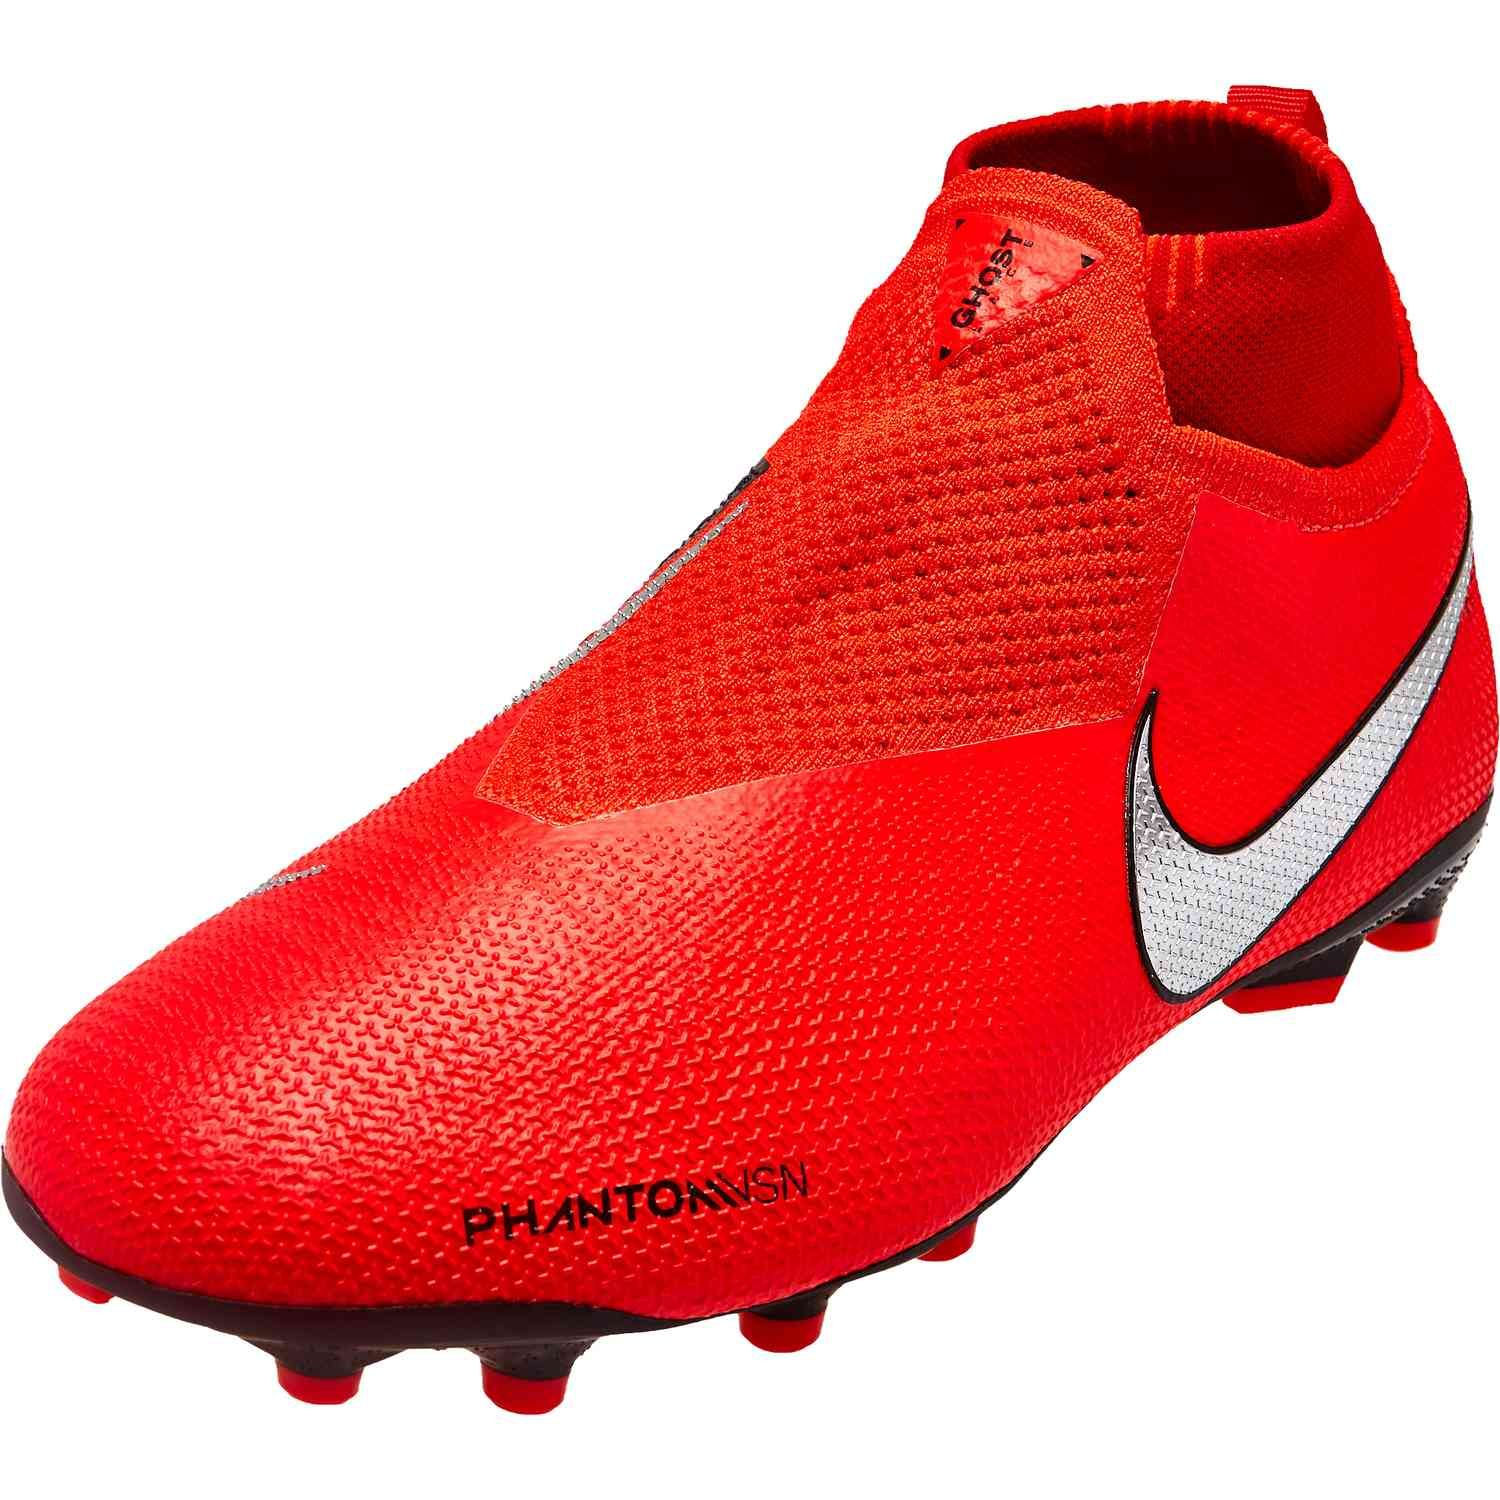 Game Over Youth Nike Phantom Vision Elite Nike Soccer Shoes Soccer Cleats Adidas Soccer Shoes